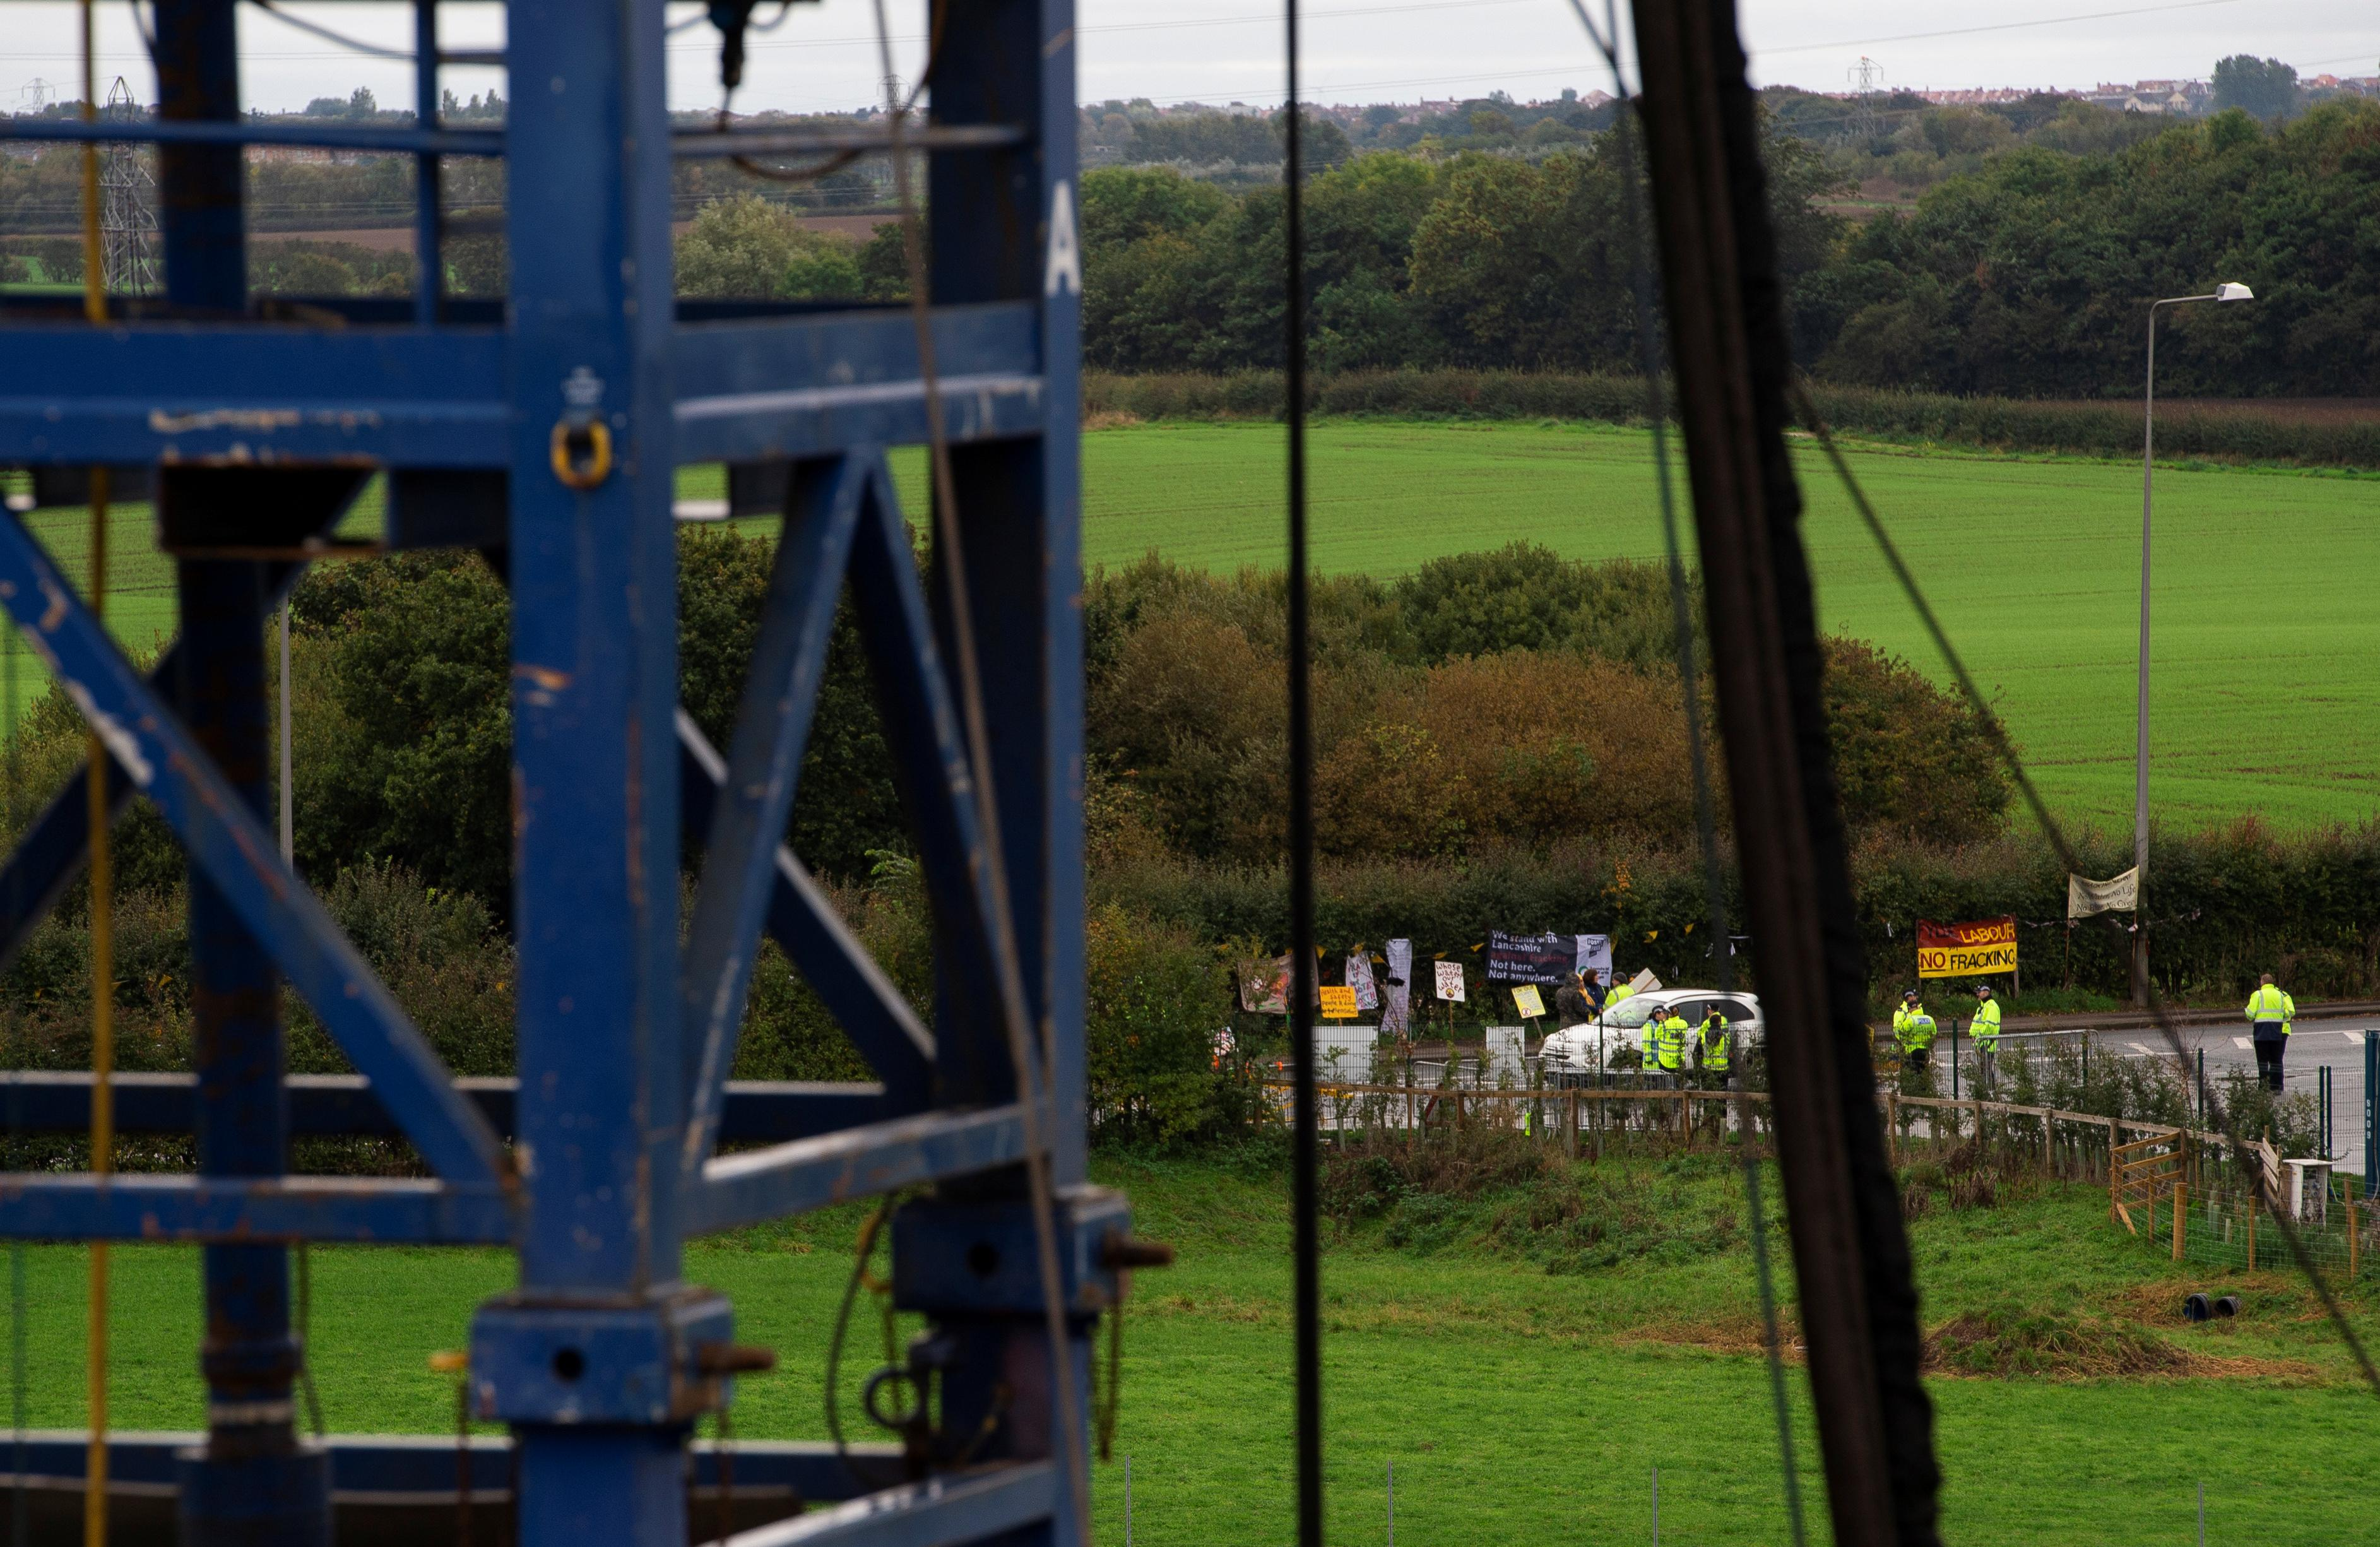 Campaigners hail 'death of fracking' in UK as work stops at Lancashire site